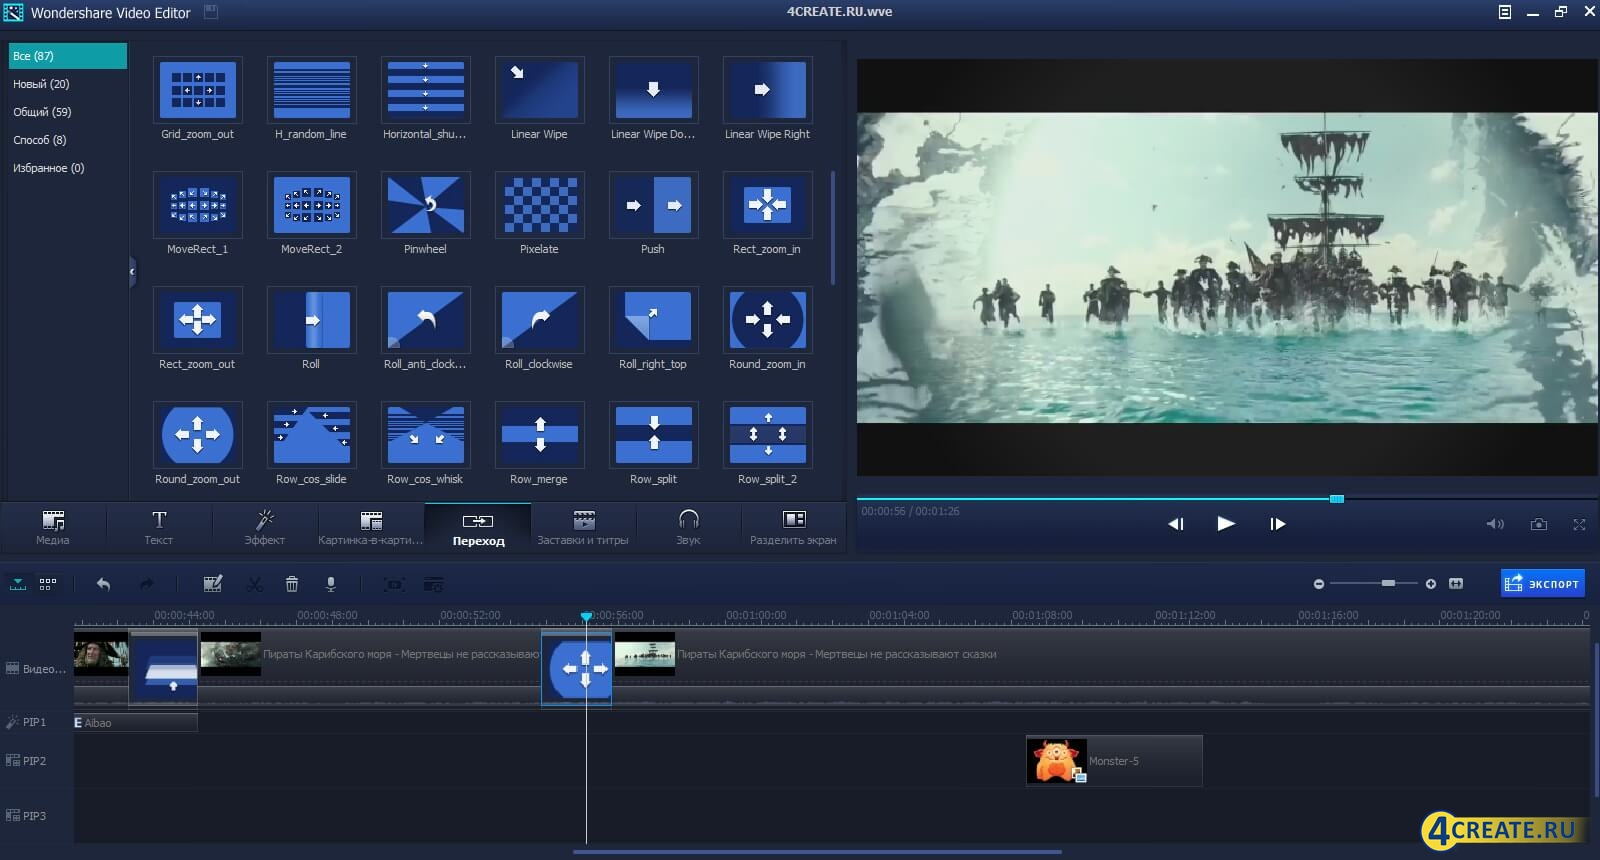 Wondershare Video Editor 5.1 (Скриншот 3)